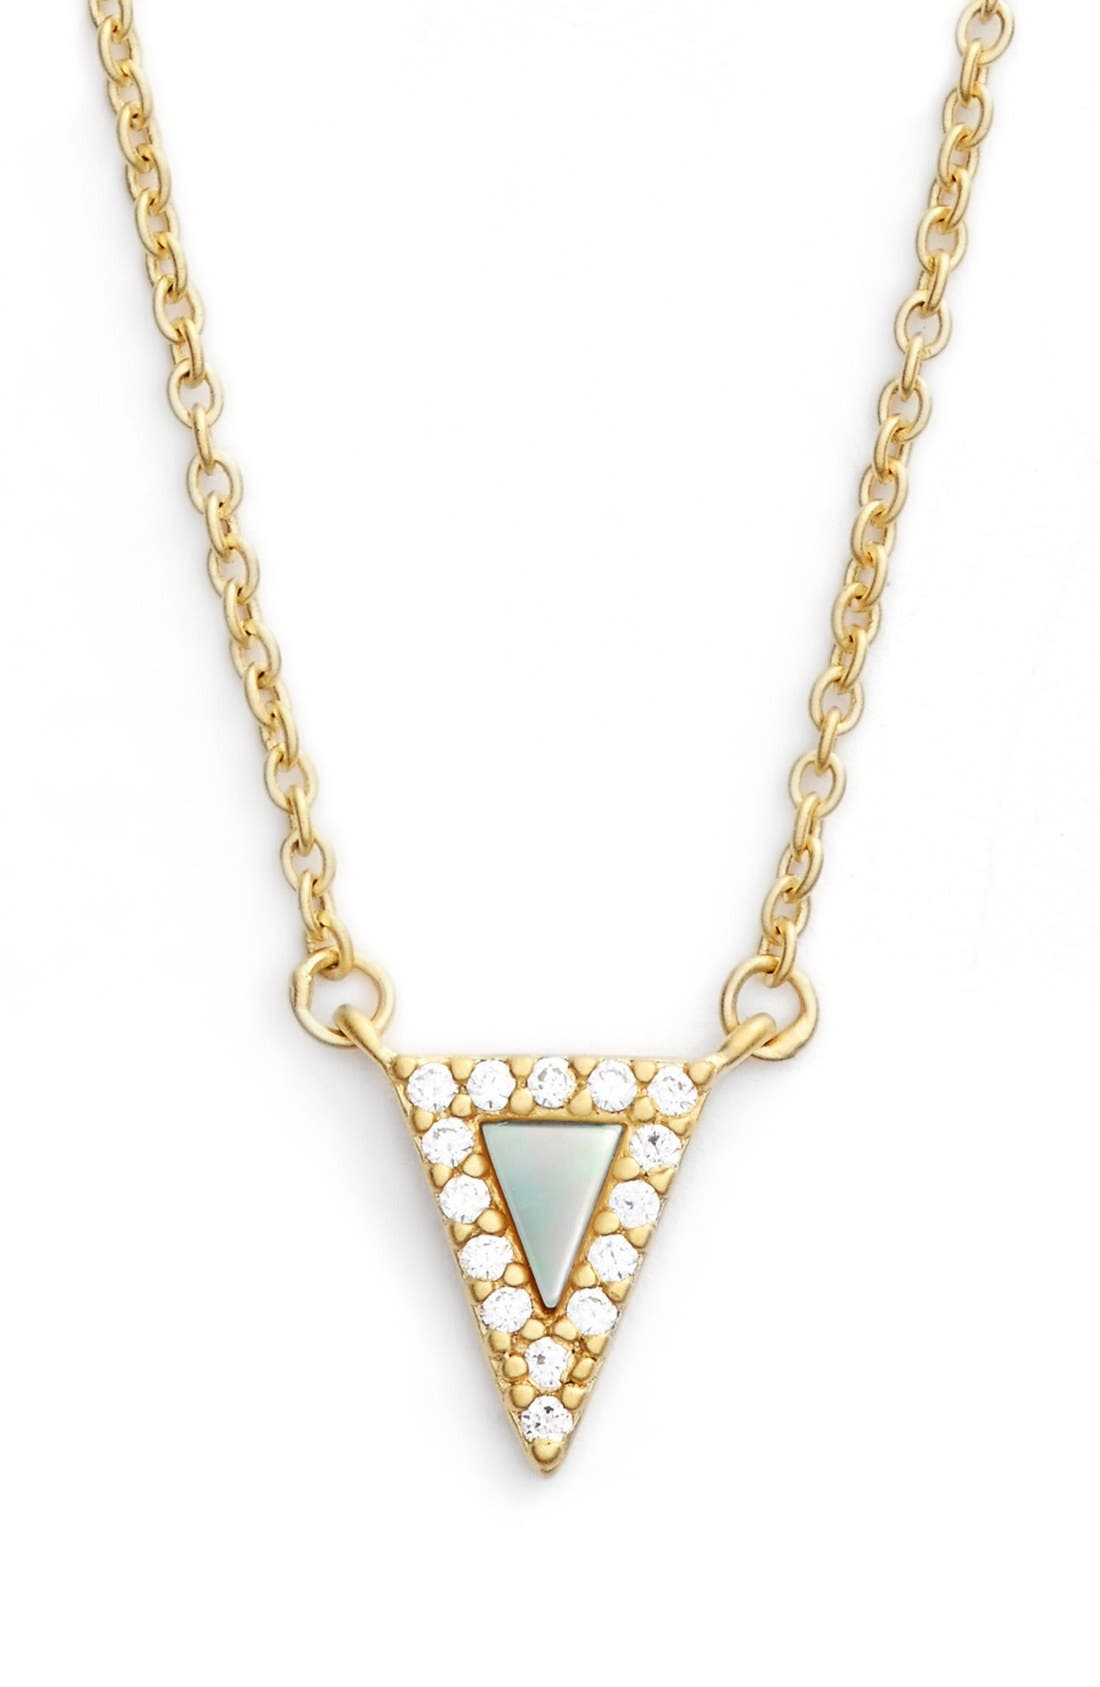 Alternate Image 1 Selected - FREIDA ROTHMAN 'Visionary' Small Triangle Pendant Necklace